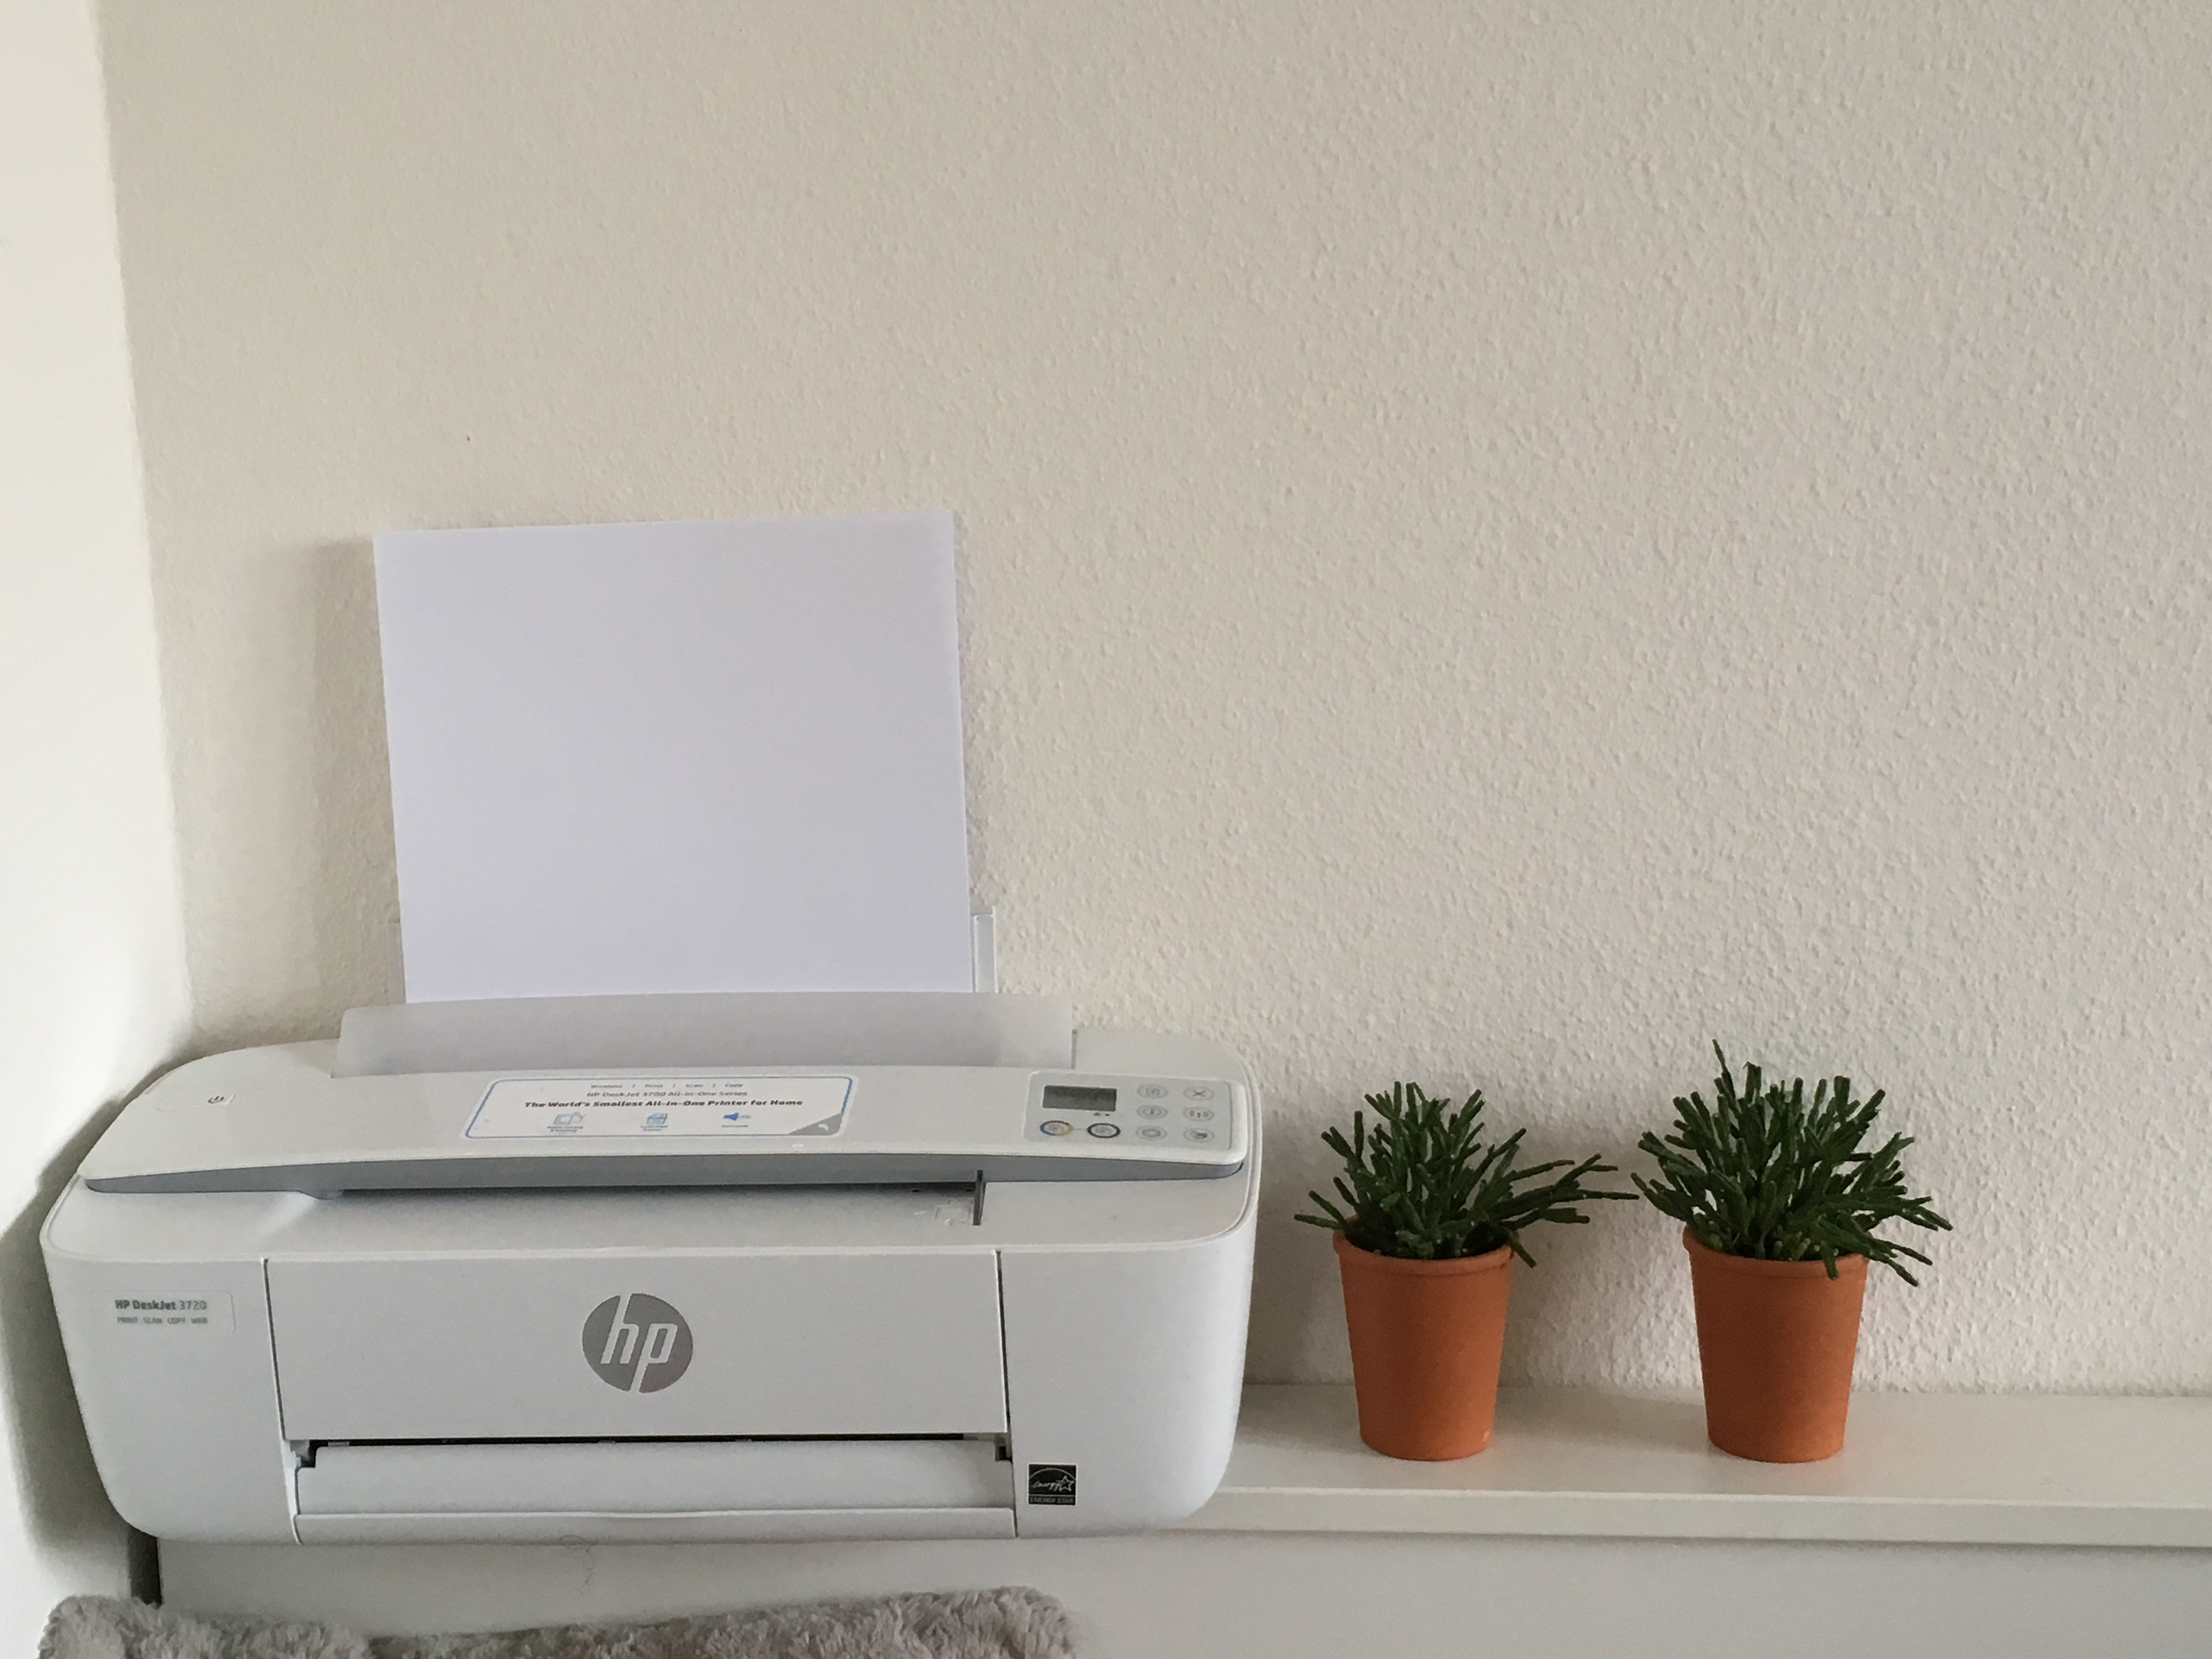 hp-wifi-printer-how-i-use-for-home-decor-deskjet-3720-3700-polaroid-world-smallest-1-swissblogger-stephanie-sgturningpointcom